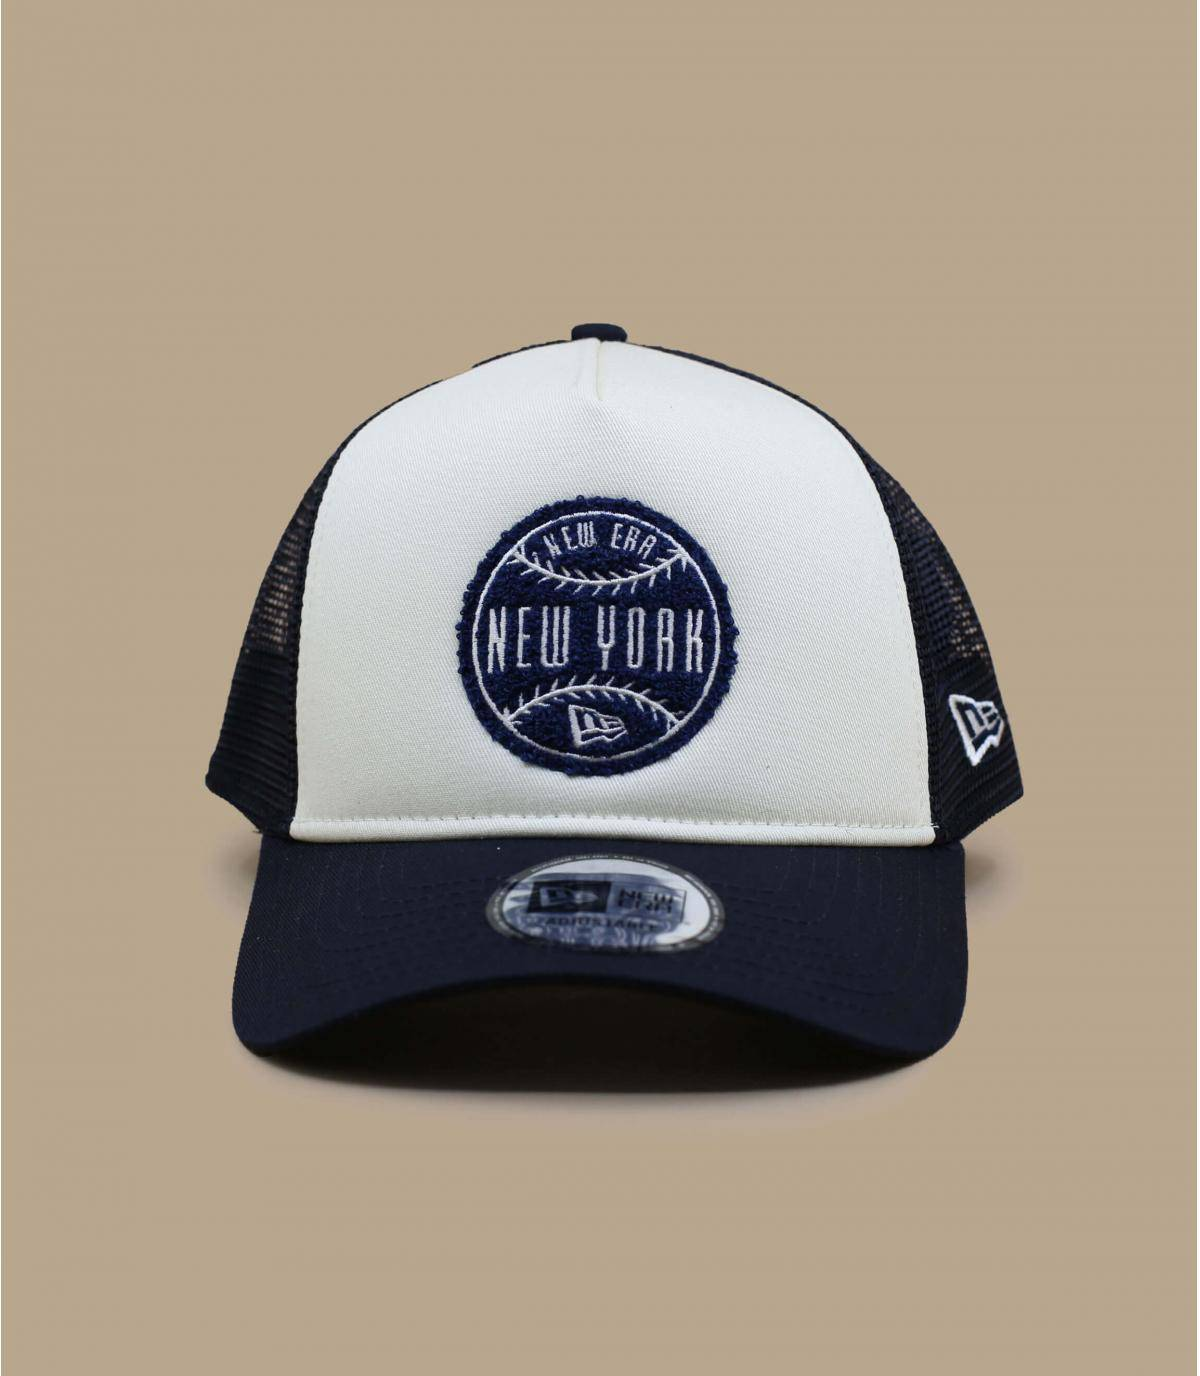 Details Trucker Circle Patch navy - afbeeling 2